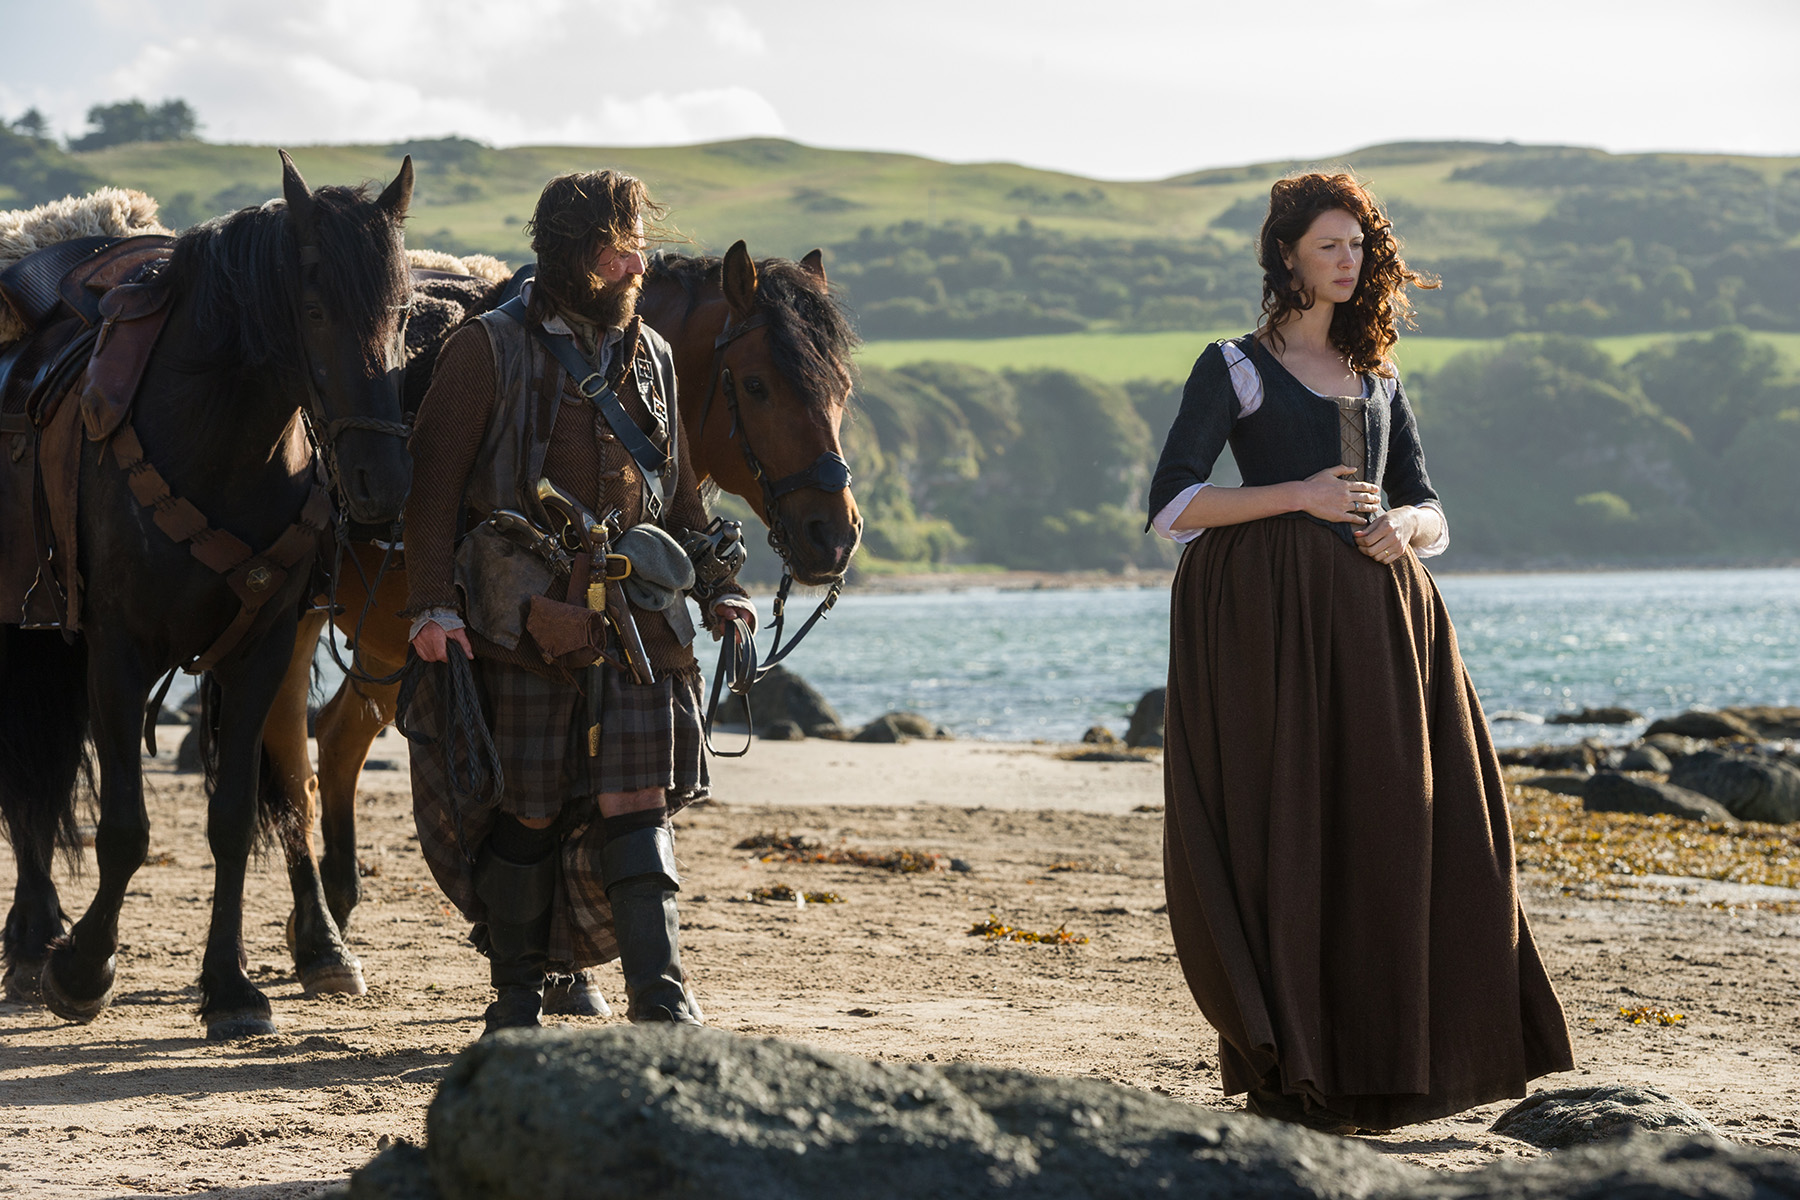 Duncan Lacroix (Murtagh Fitzgibbons) and Caitriona Balfe (Claire Randall Fraser)